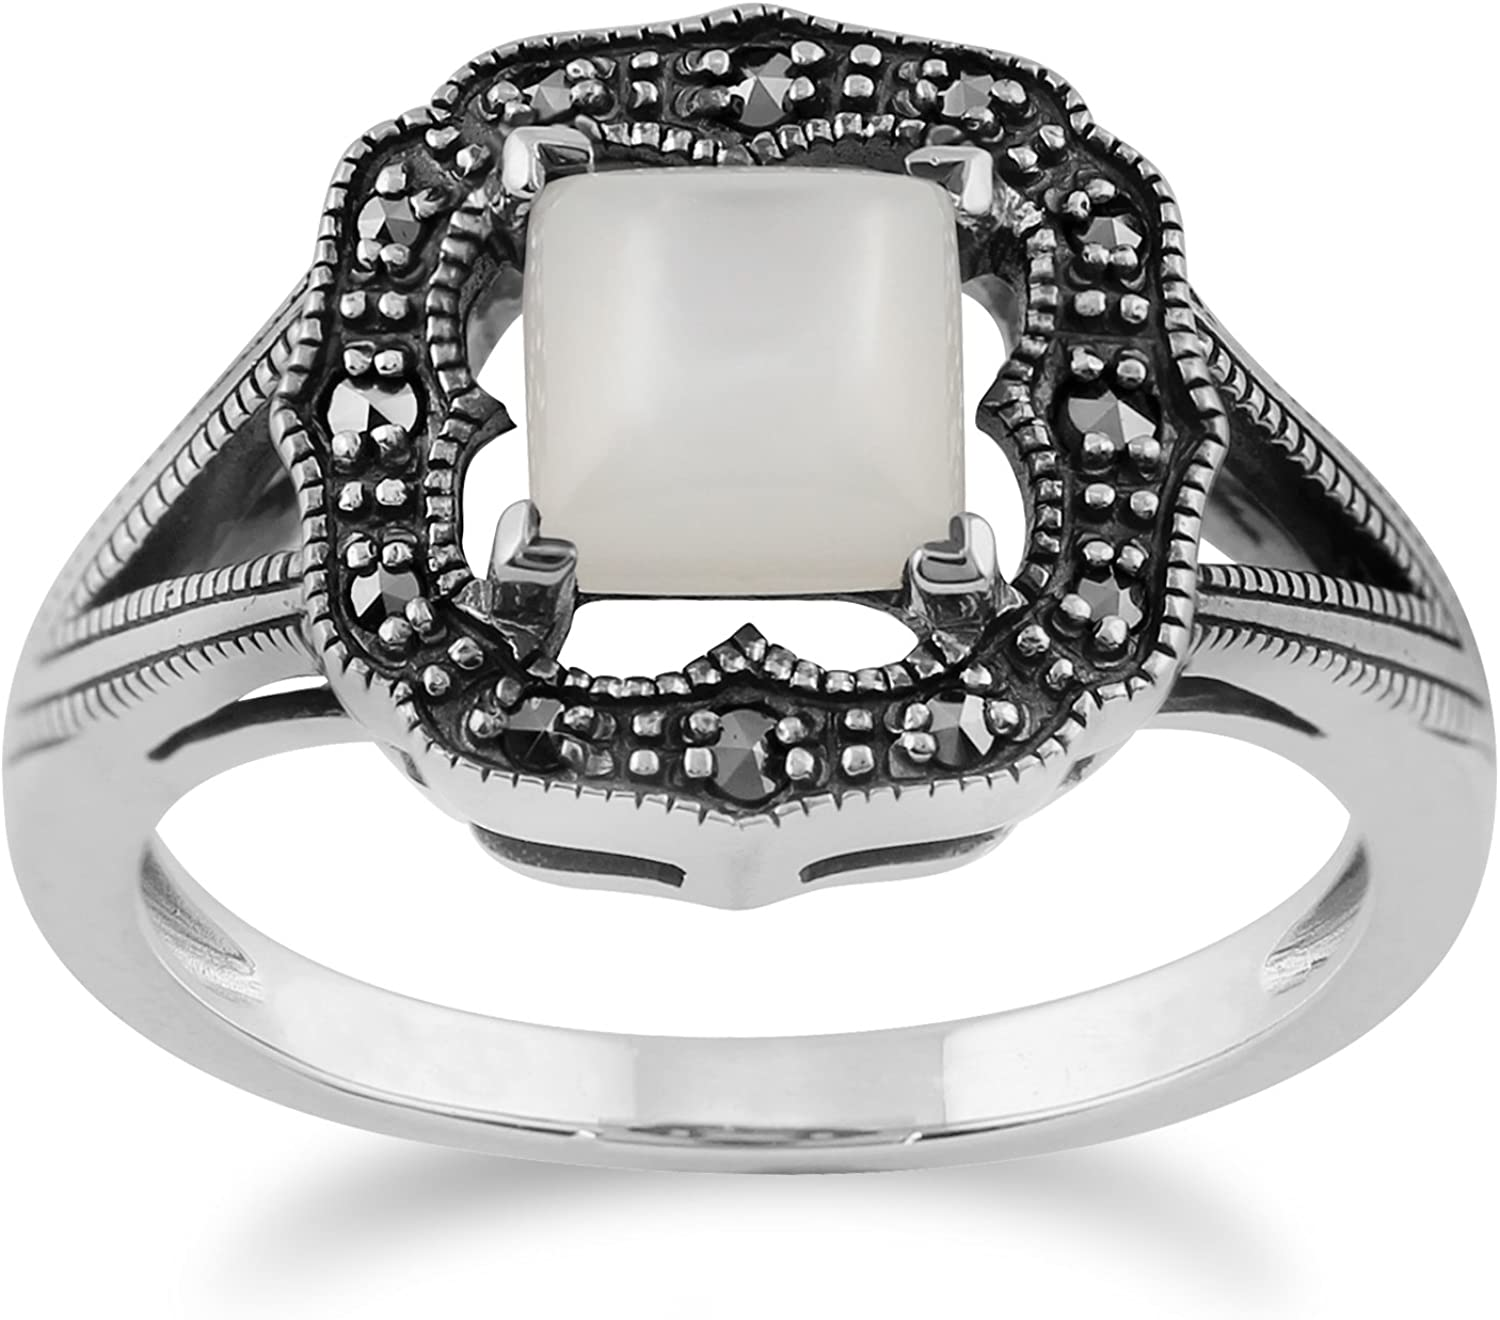 Gemondo Art Deco Ring, 925 Sterling Silver 0.58ct Mother of Pearl & Marcasite Art Deco Ring